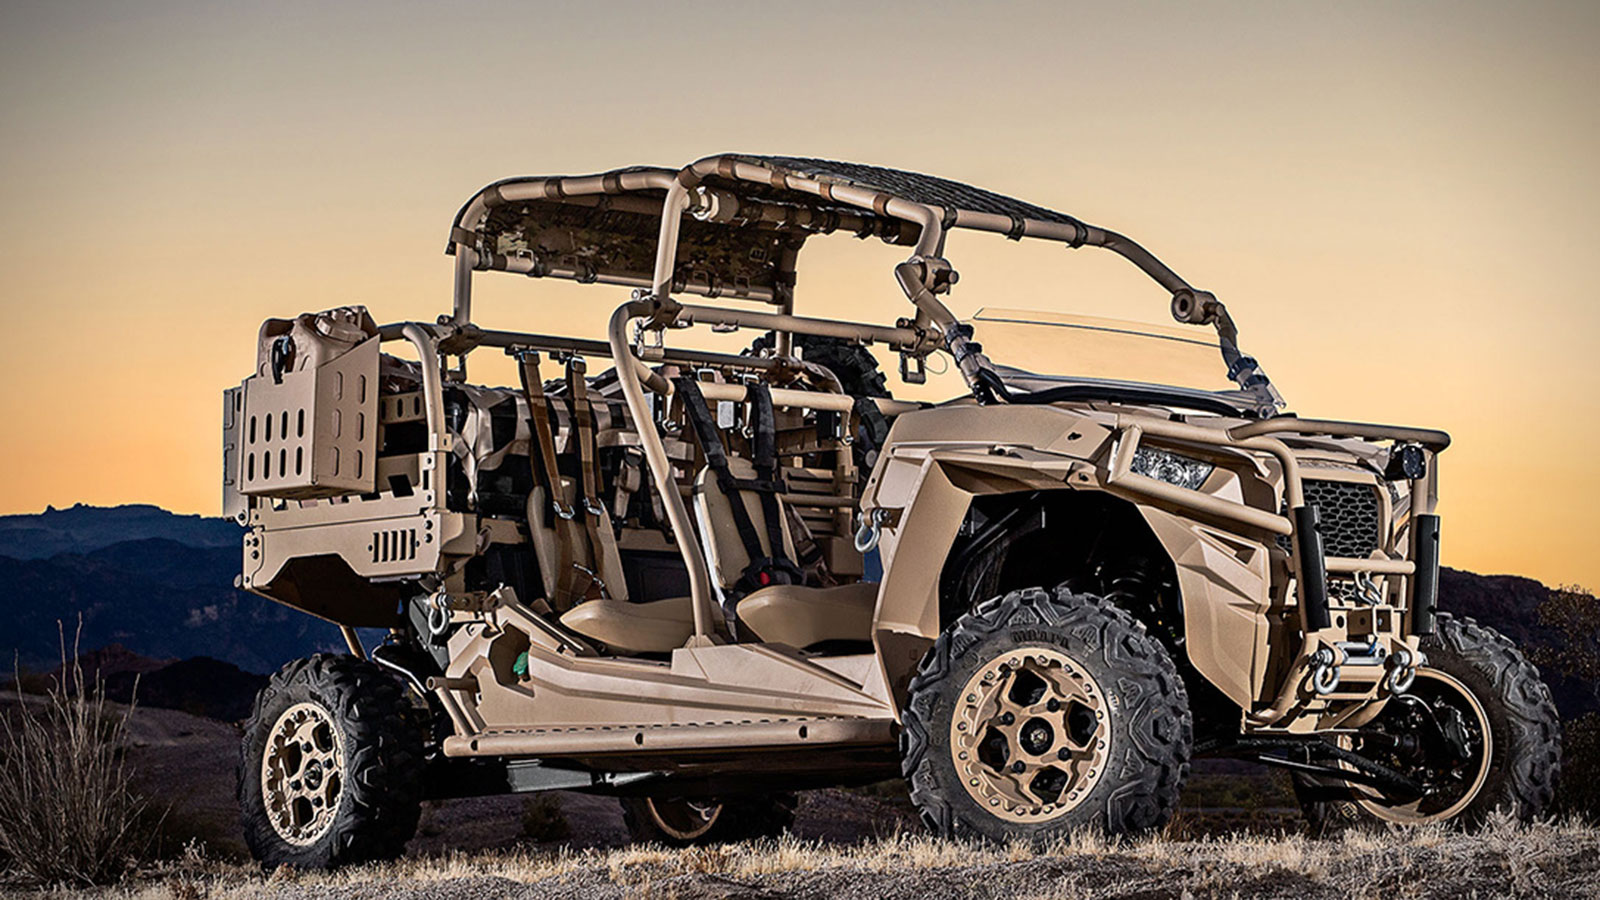 POLARIS DEFENSE TURBO DIESEL MRZR-D MILITARY ATV